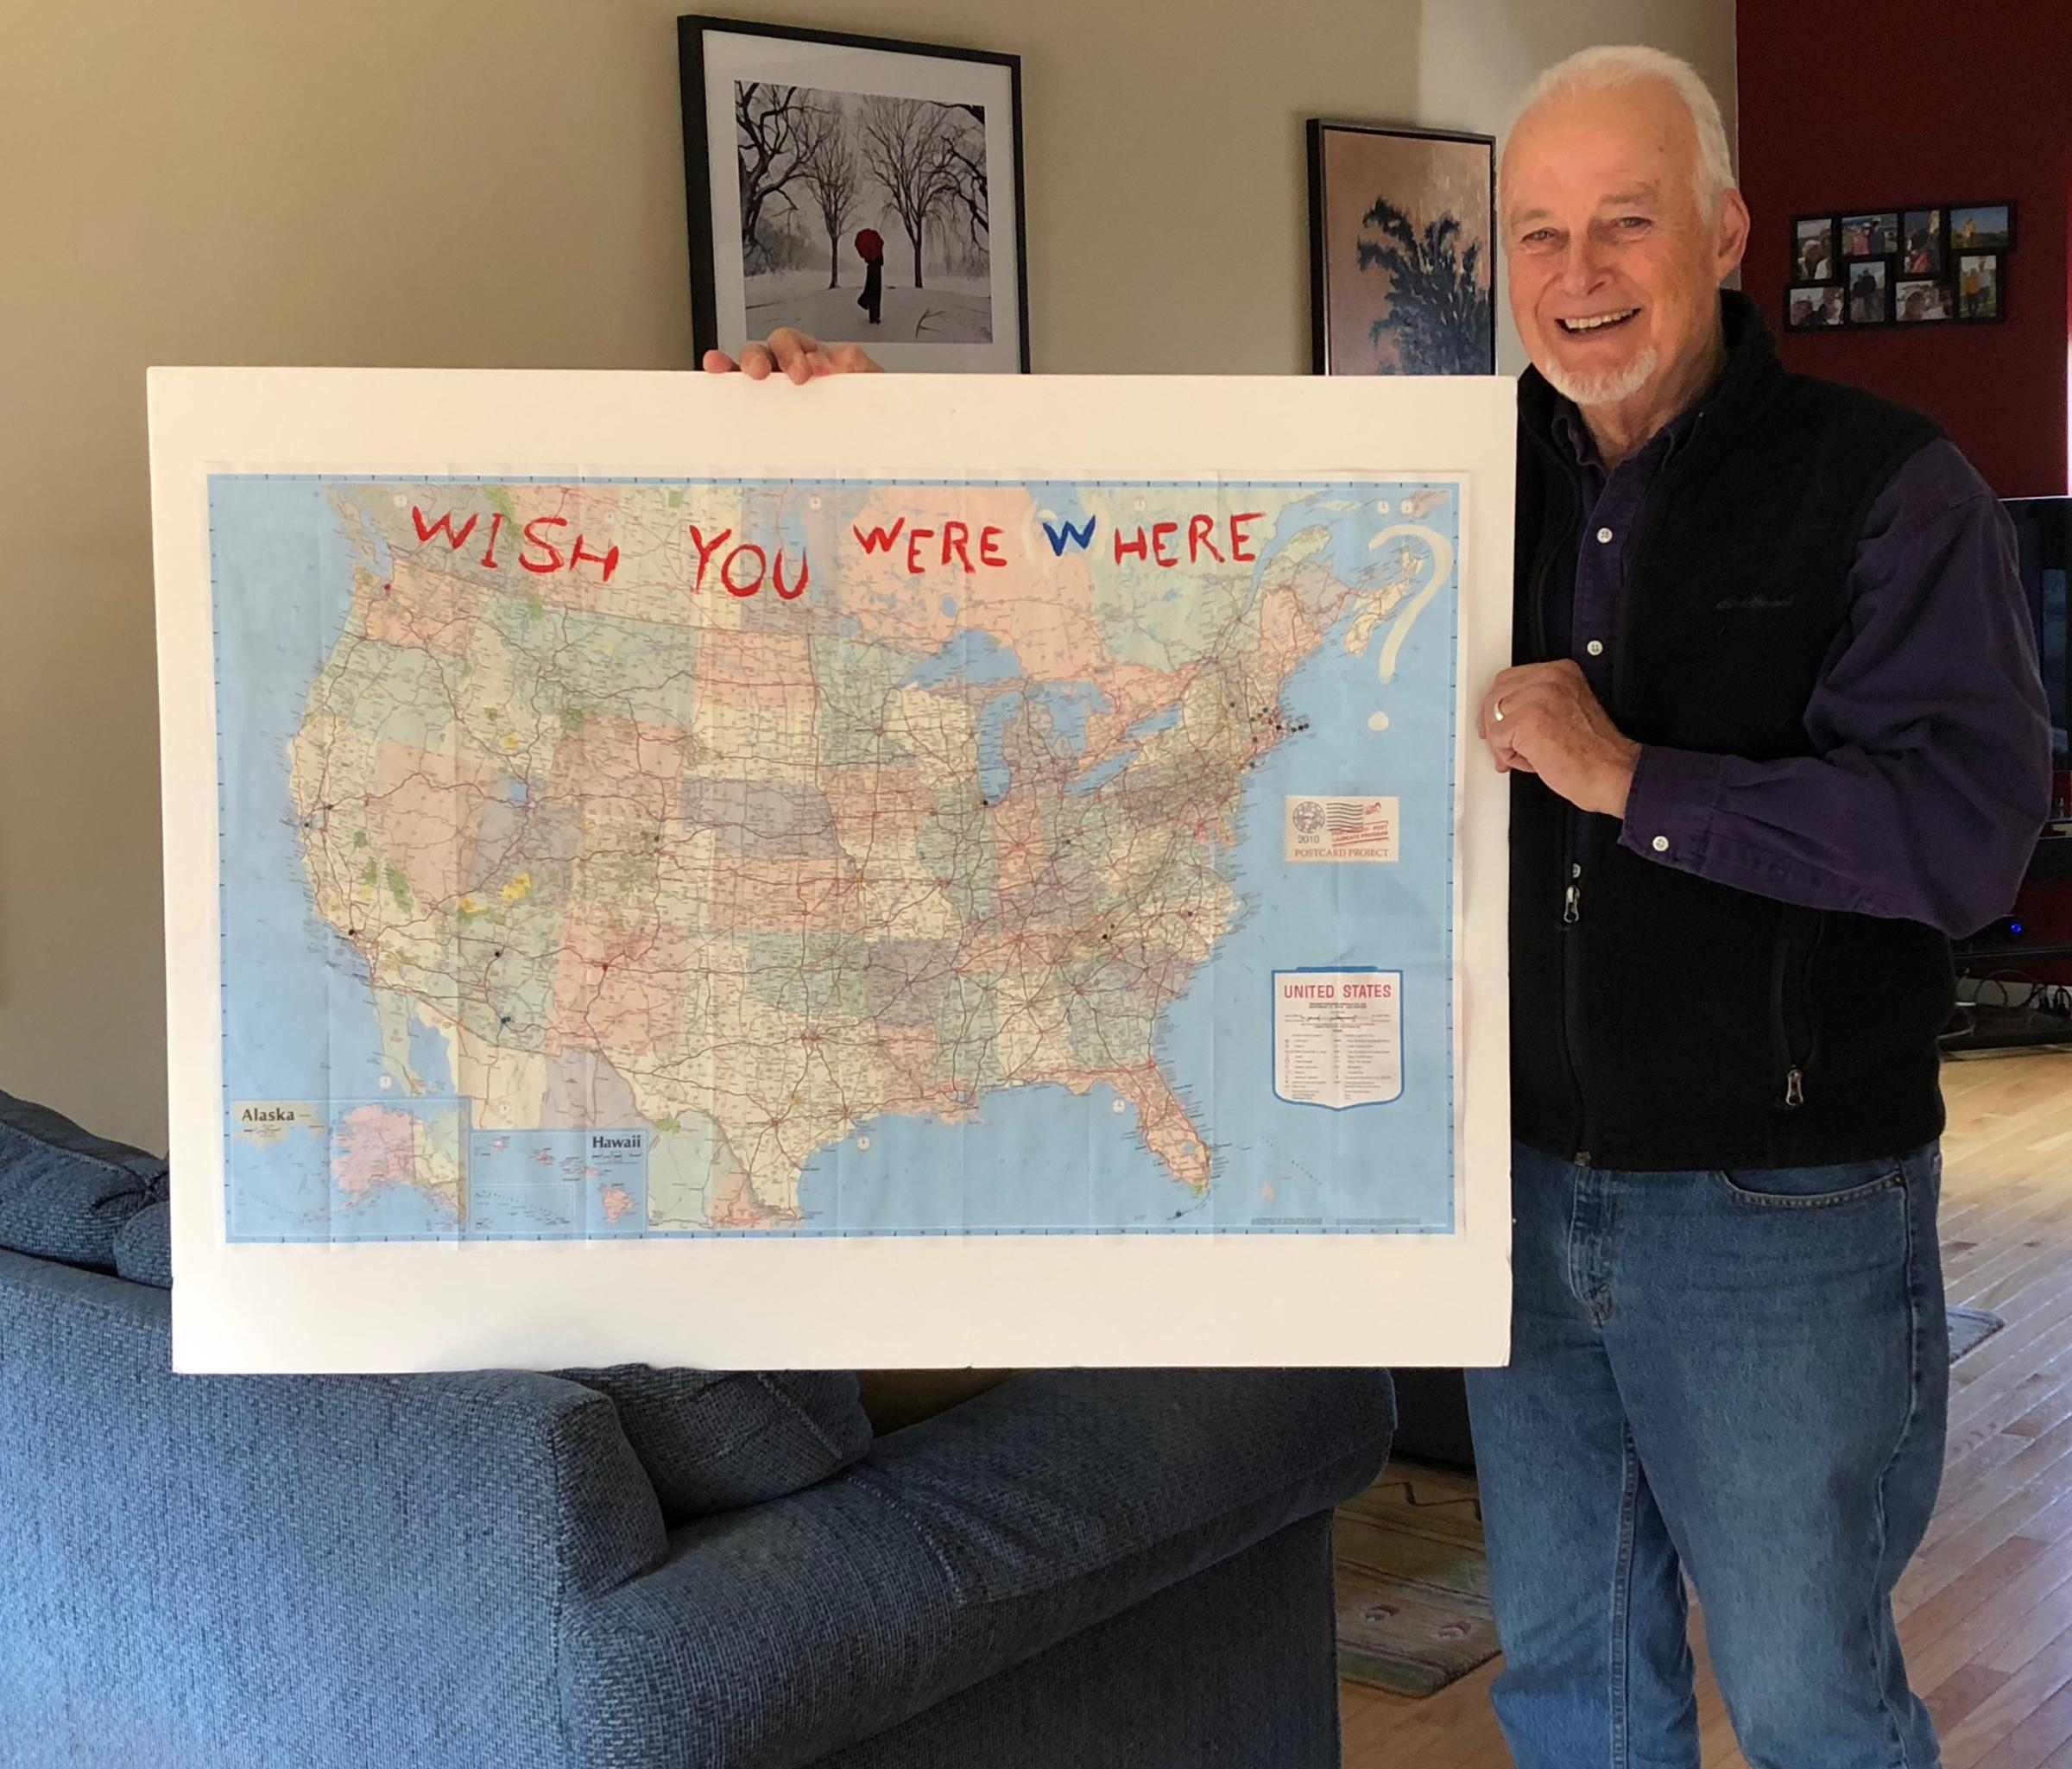 The bookshelf portsmouth poet laureate program celebrates 20 years bill burtis one of the co chairs of the portsmouth poet laureate program board of trustees stands with a map from former poet laureate mark decarterets gumiabroncs Image collections